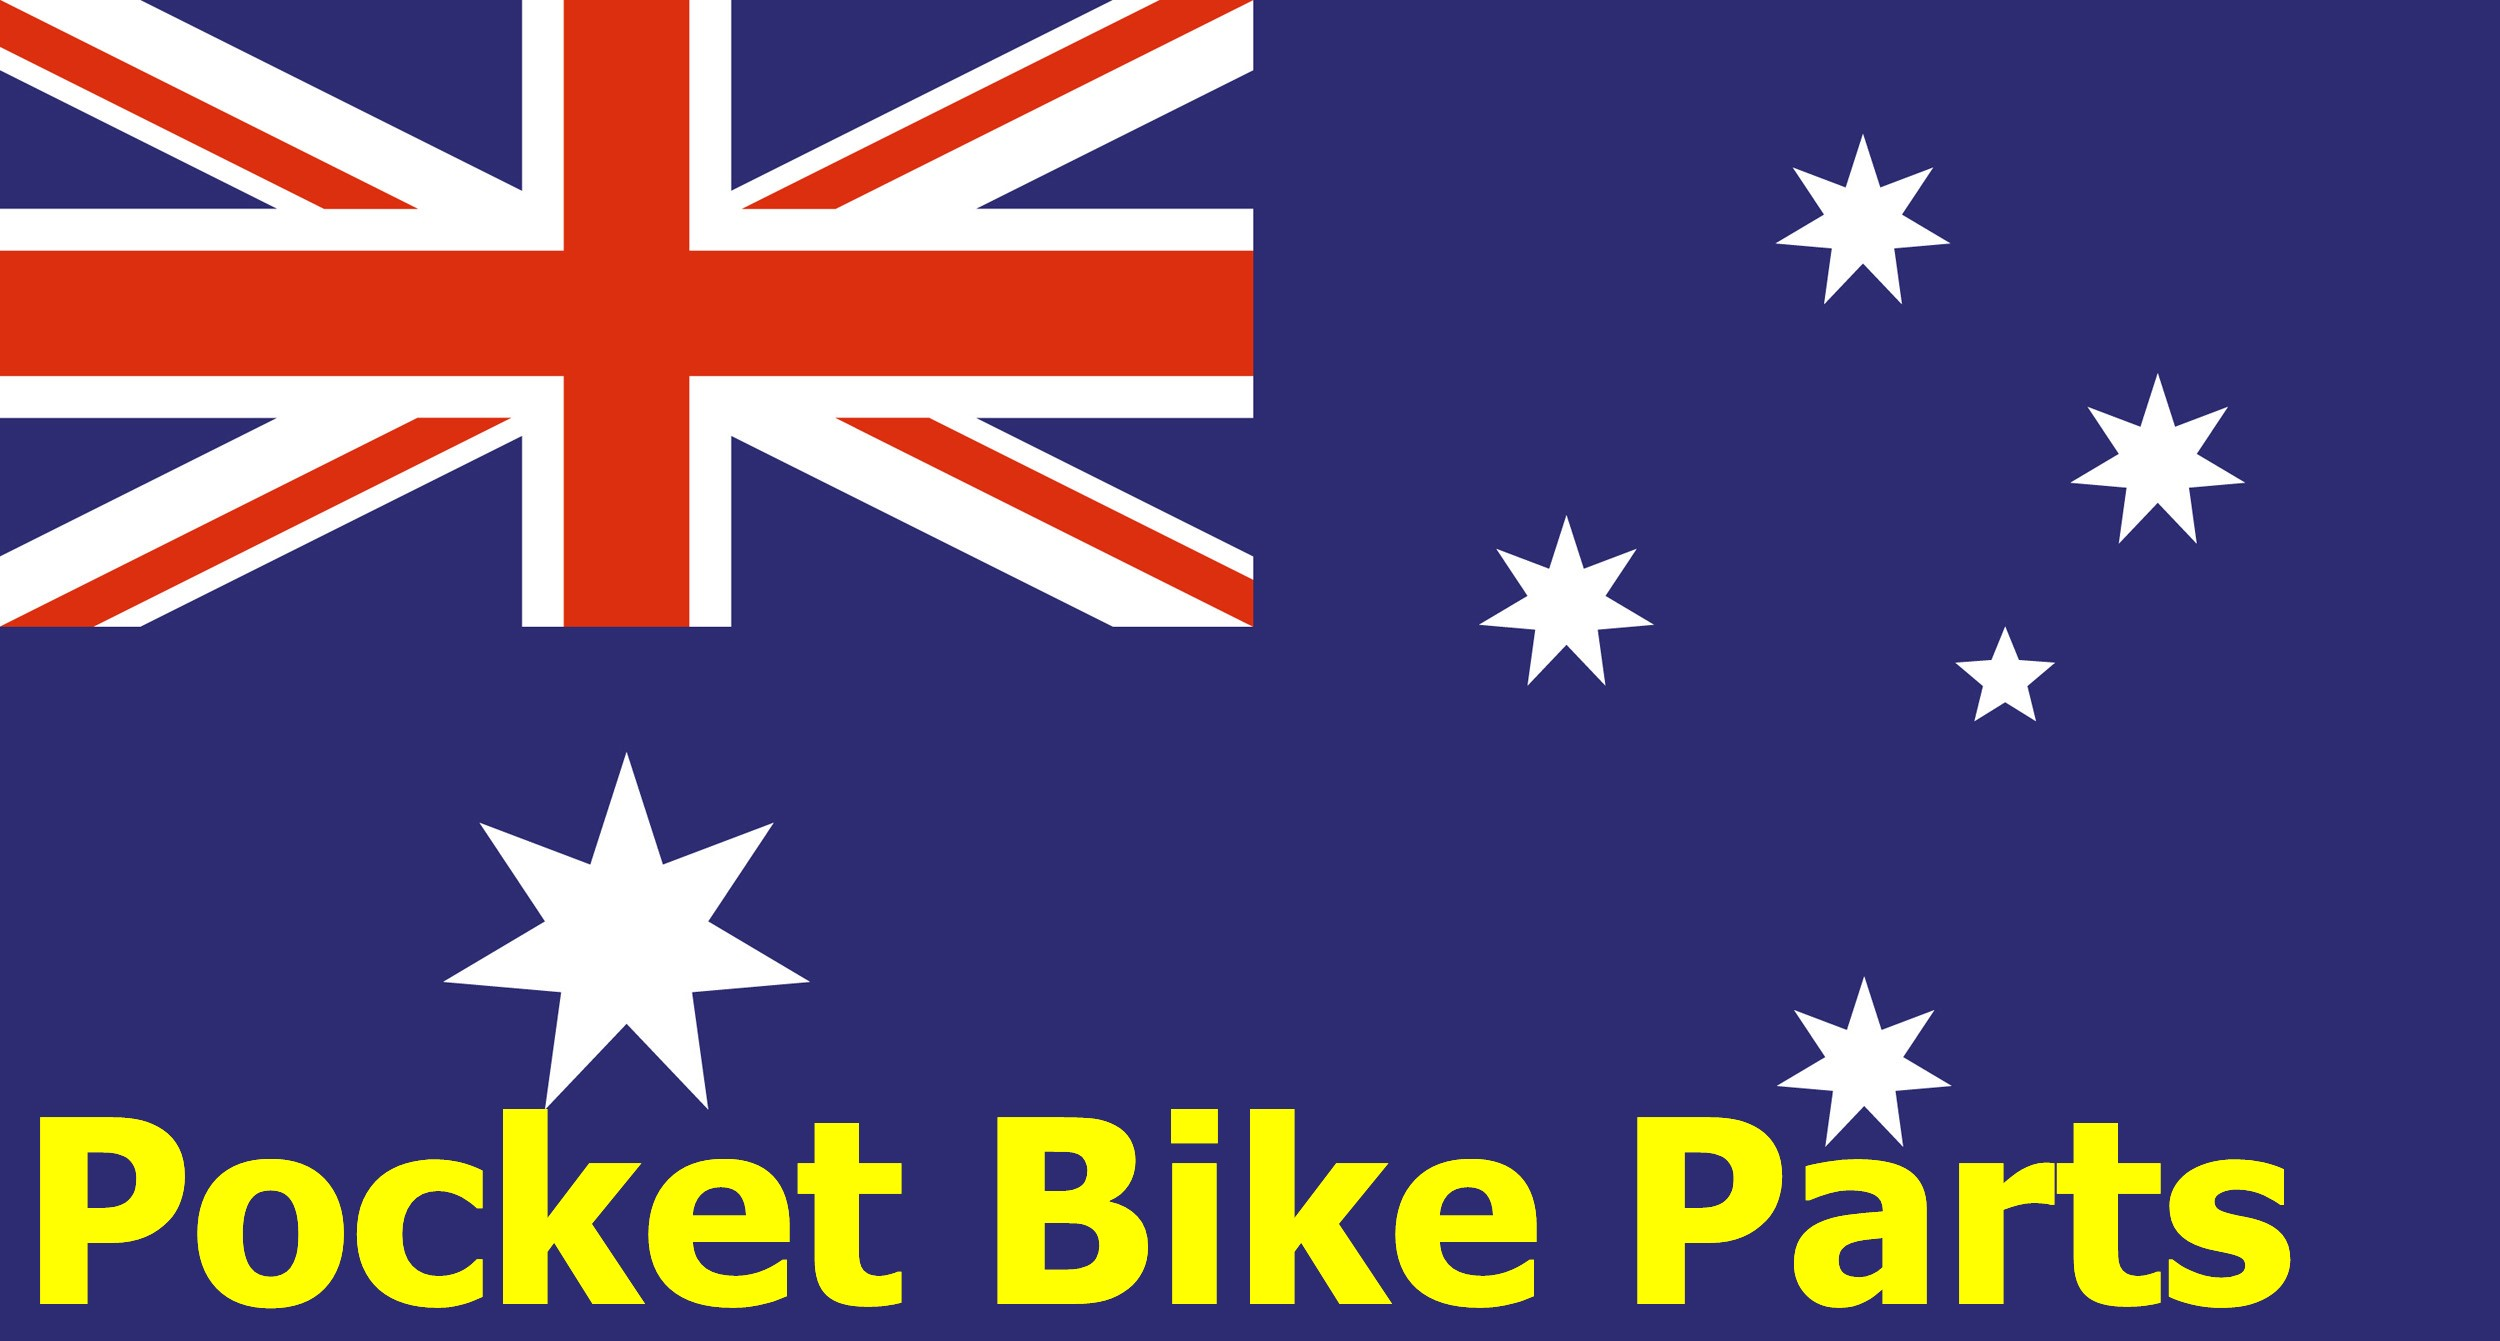 Pocket Bike Parts